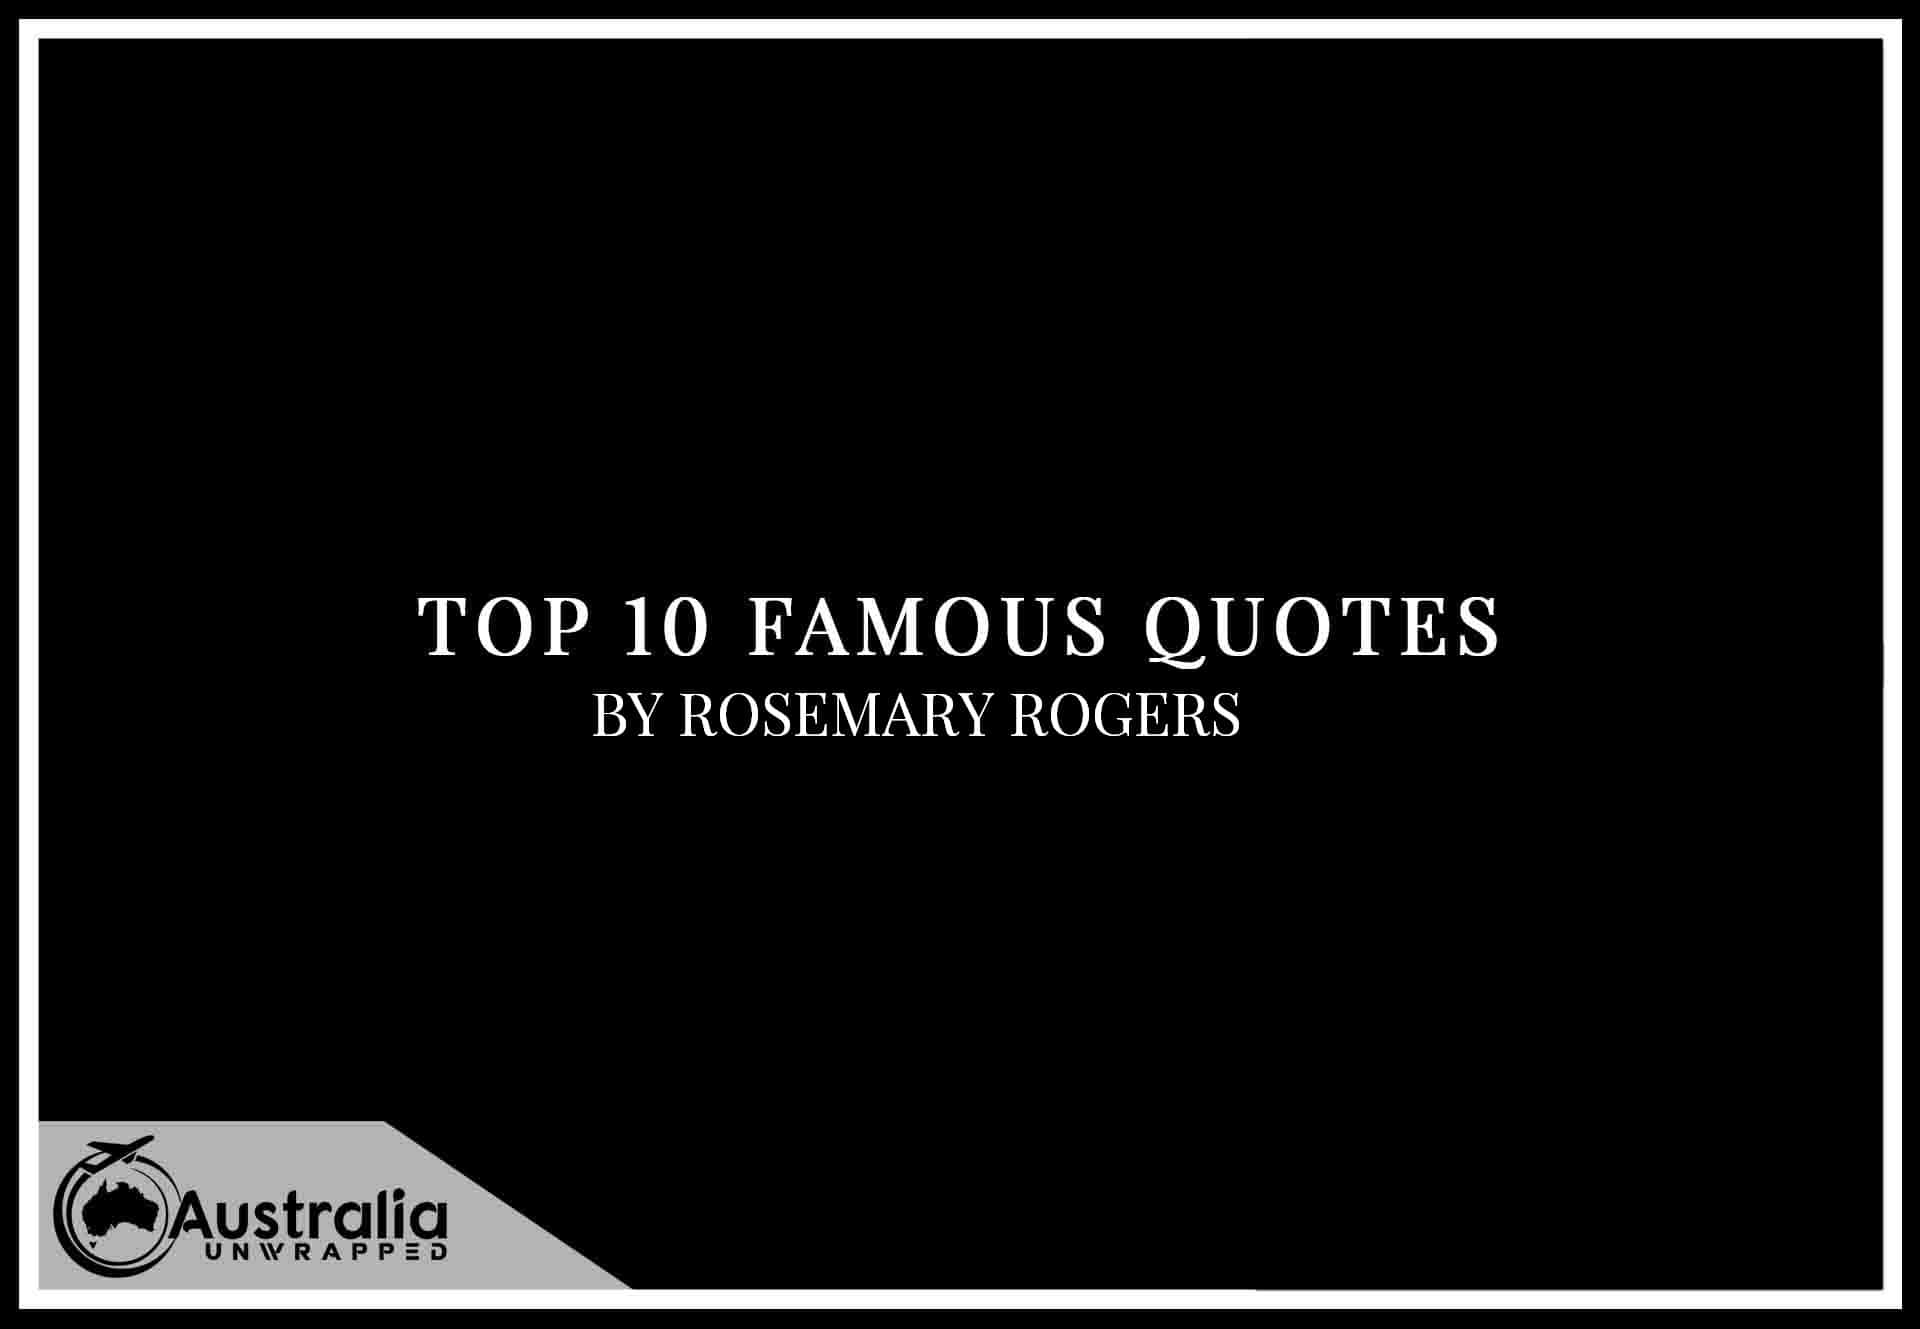 Top 10 Famous Quotes by Author Rosemary Rogers